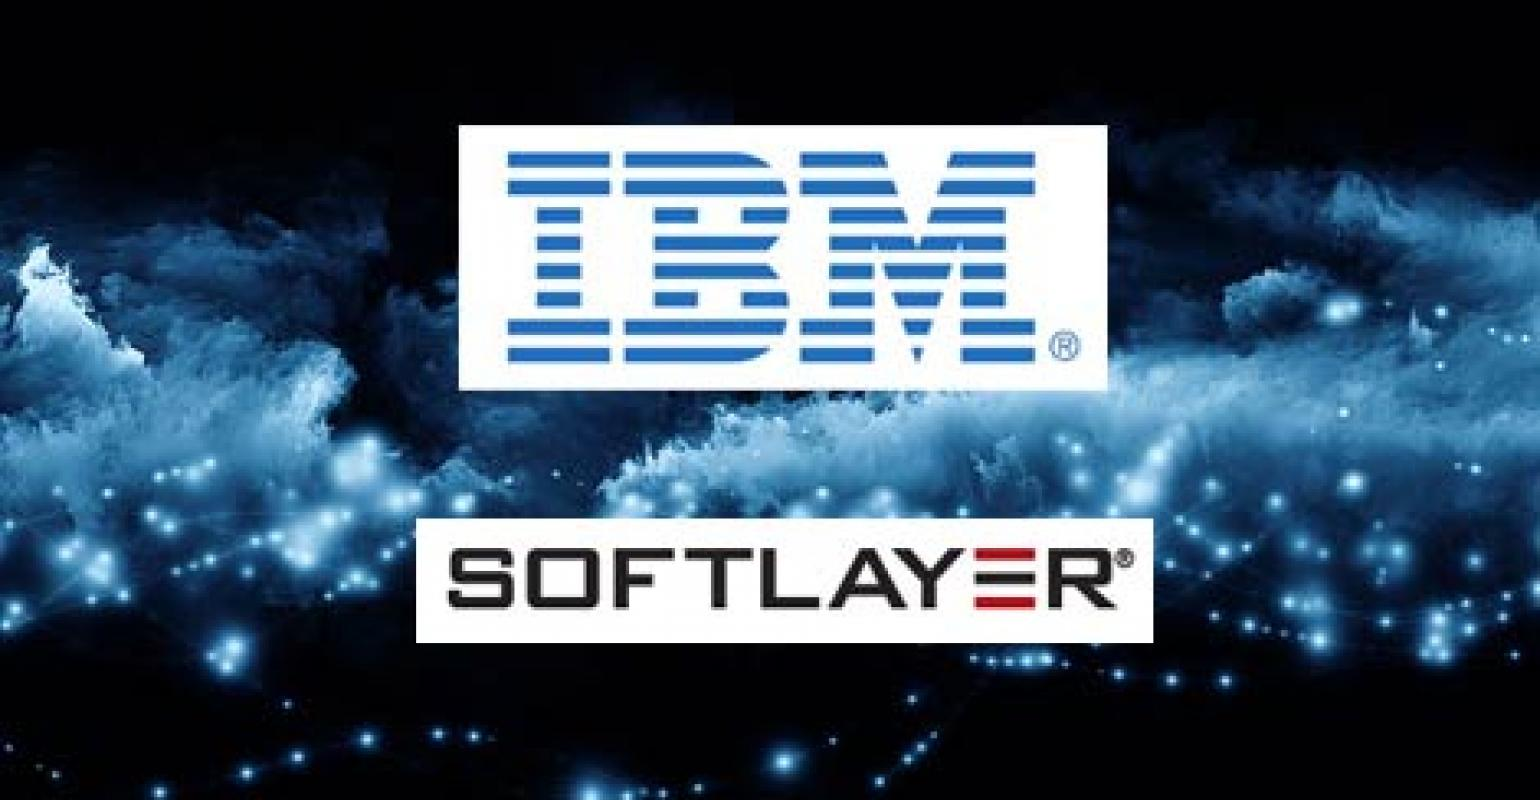 After a Year SoftLayer One of More Successful IBM